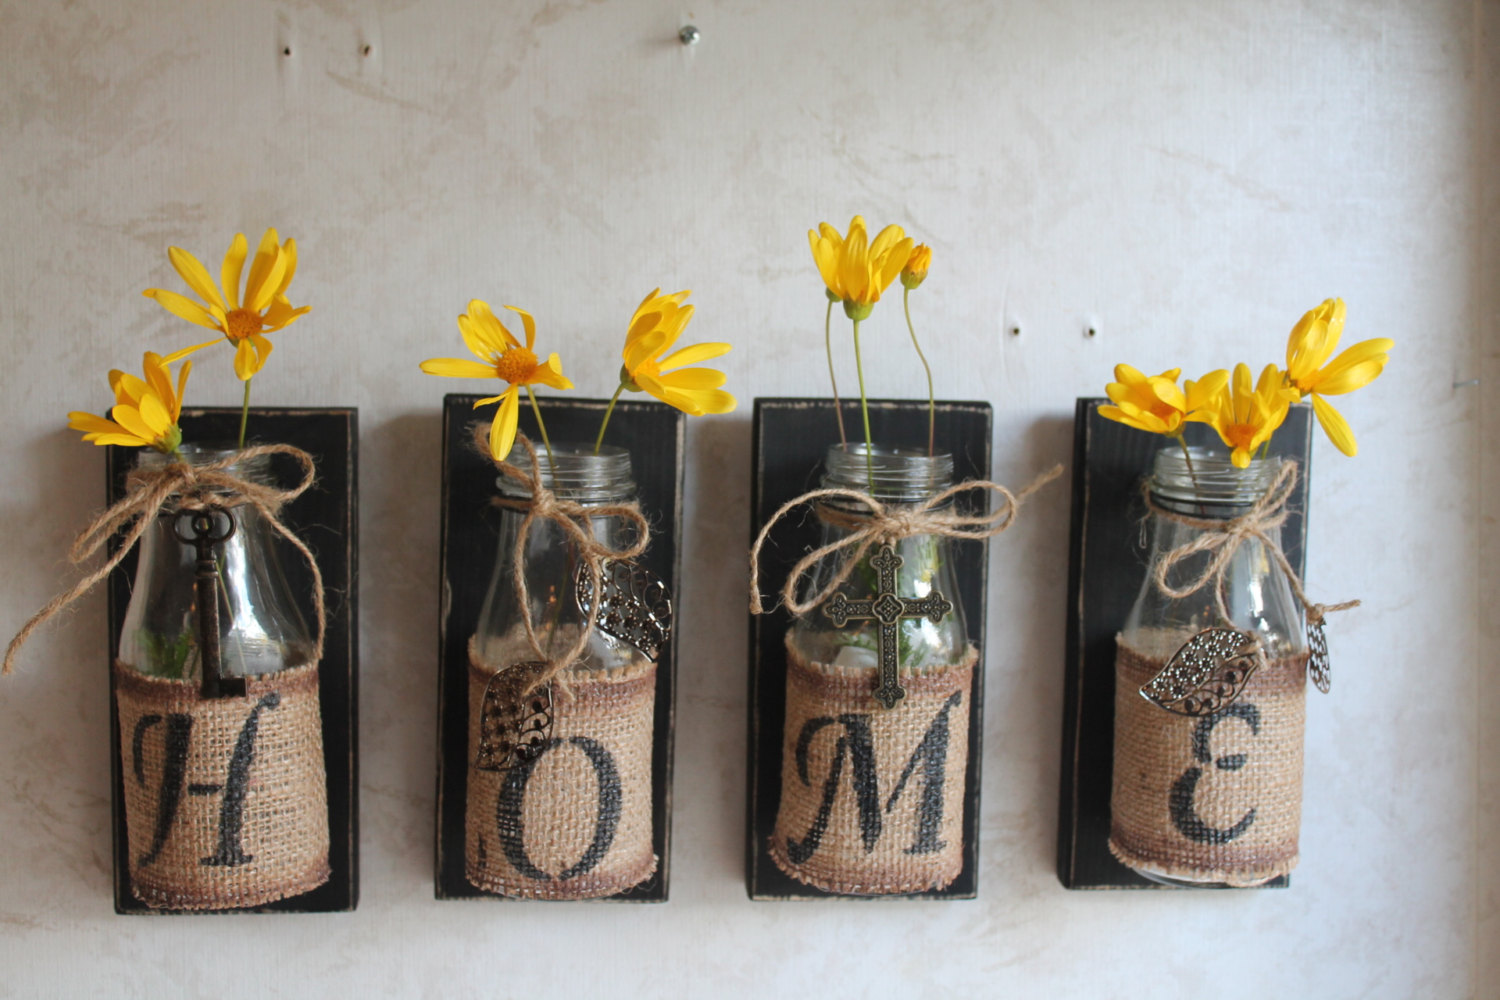 Upcycle home plant jars